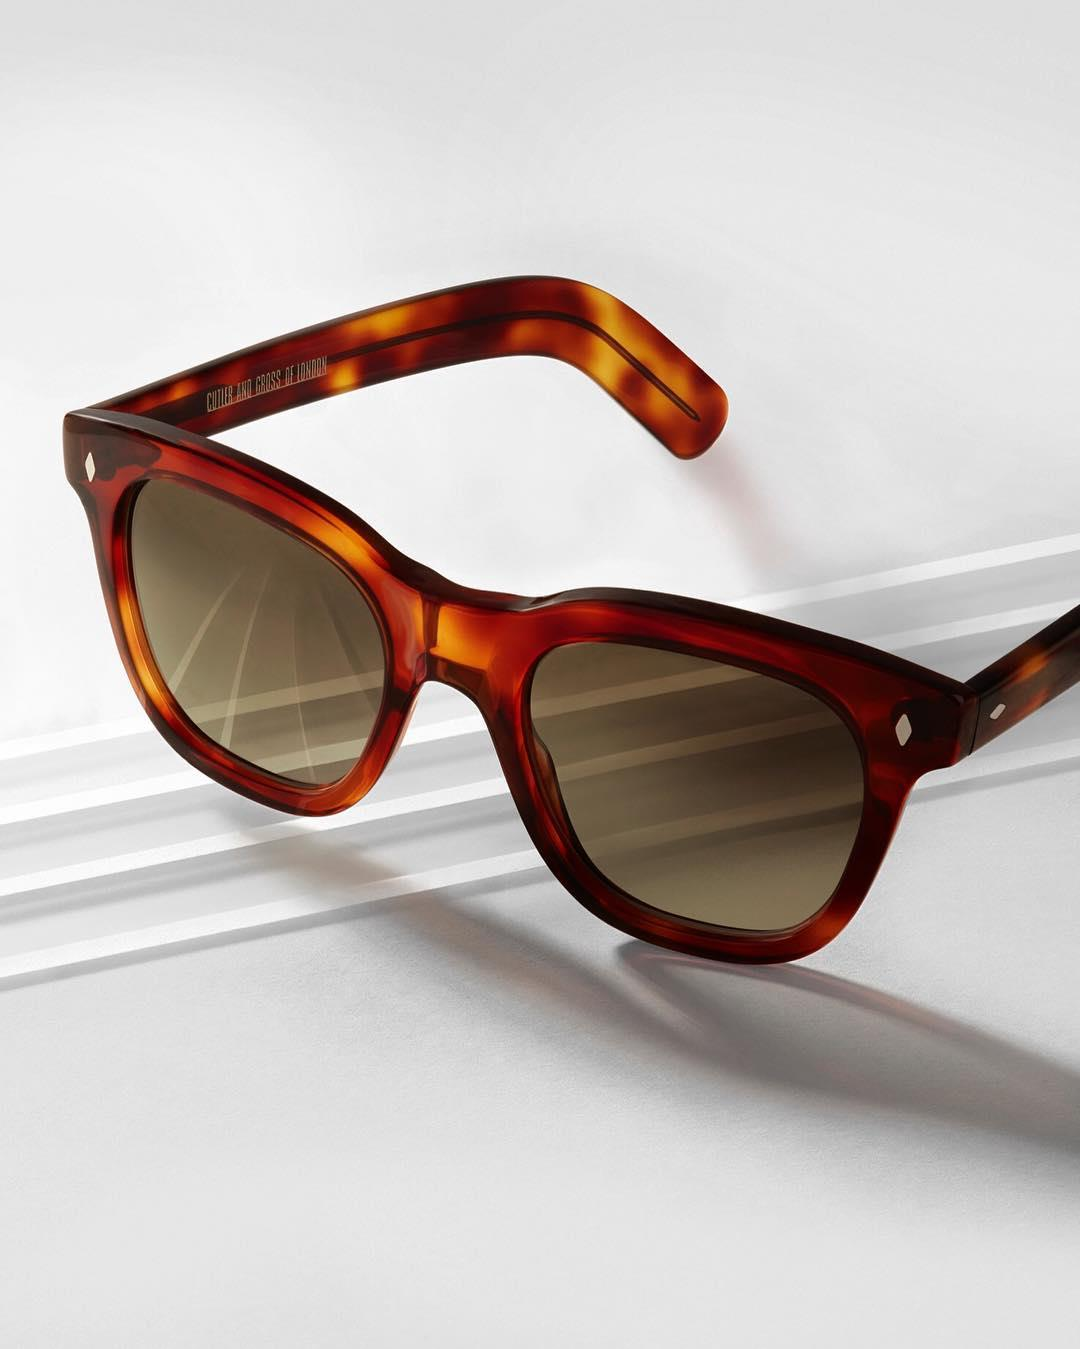 Timeless tortoiseshell. Clean lines and classic colour. The Cutler and Gross frame 1232, a bold reinvention of the 0850 featuring the classic diamond pin and heavy, tapered temples